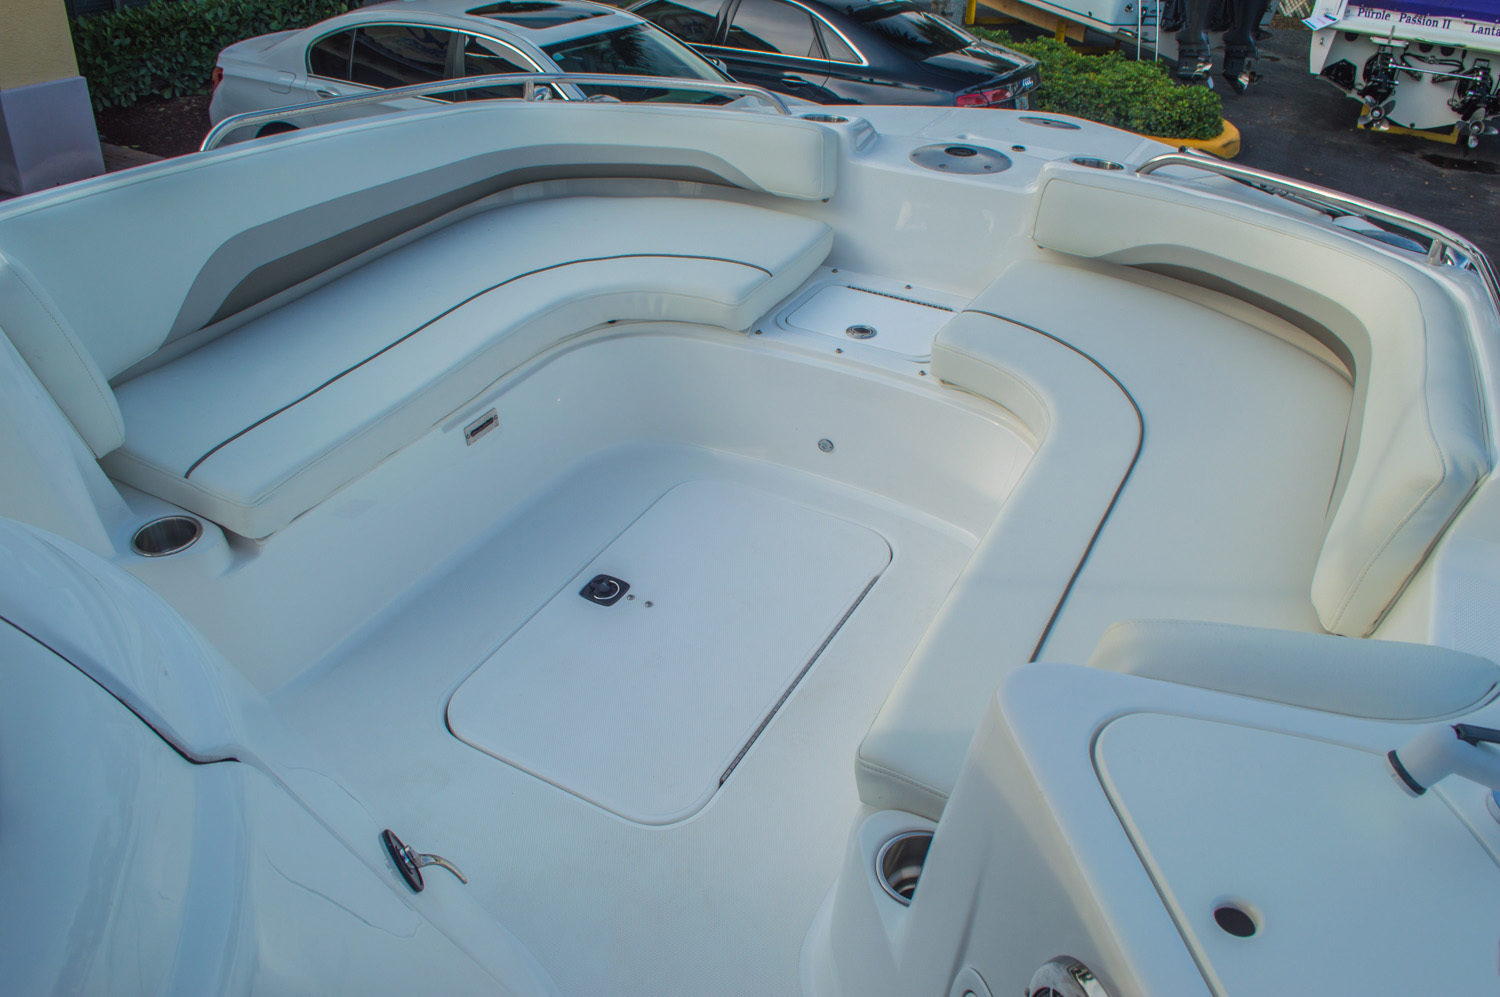 Thumbnail 41 for New 2016 Hurricane CC211 Center Consle boat for sale in West Palm Beach, FL